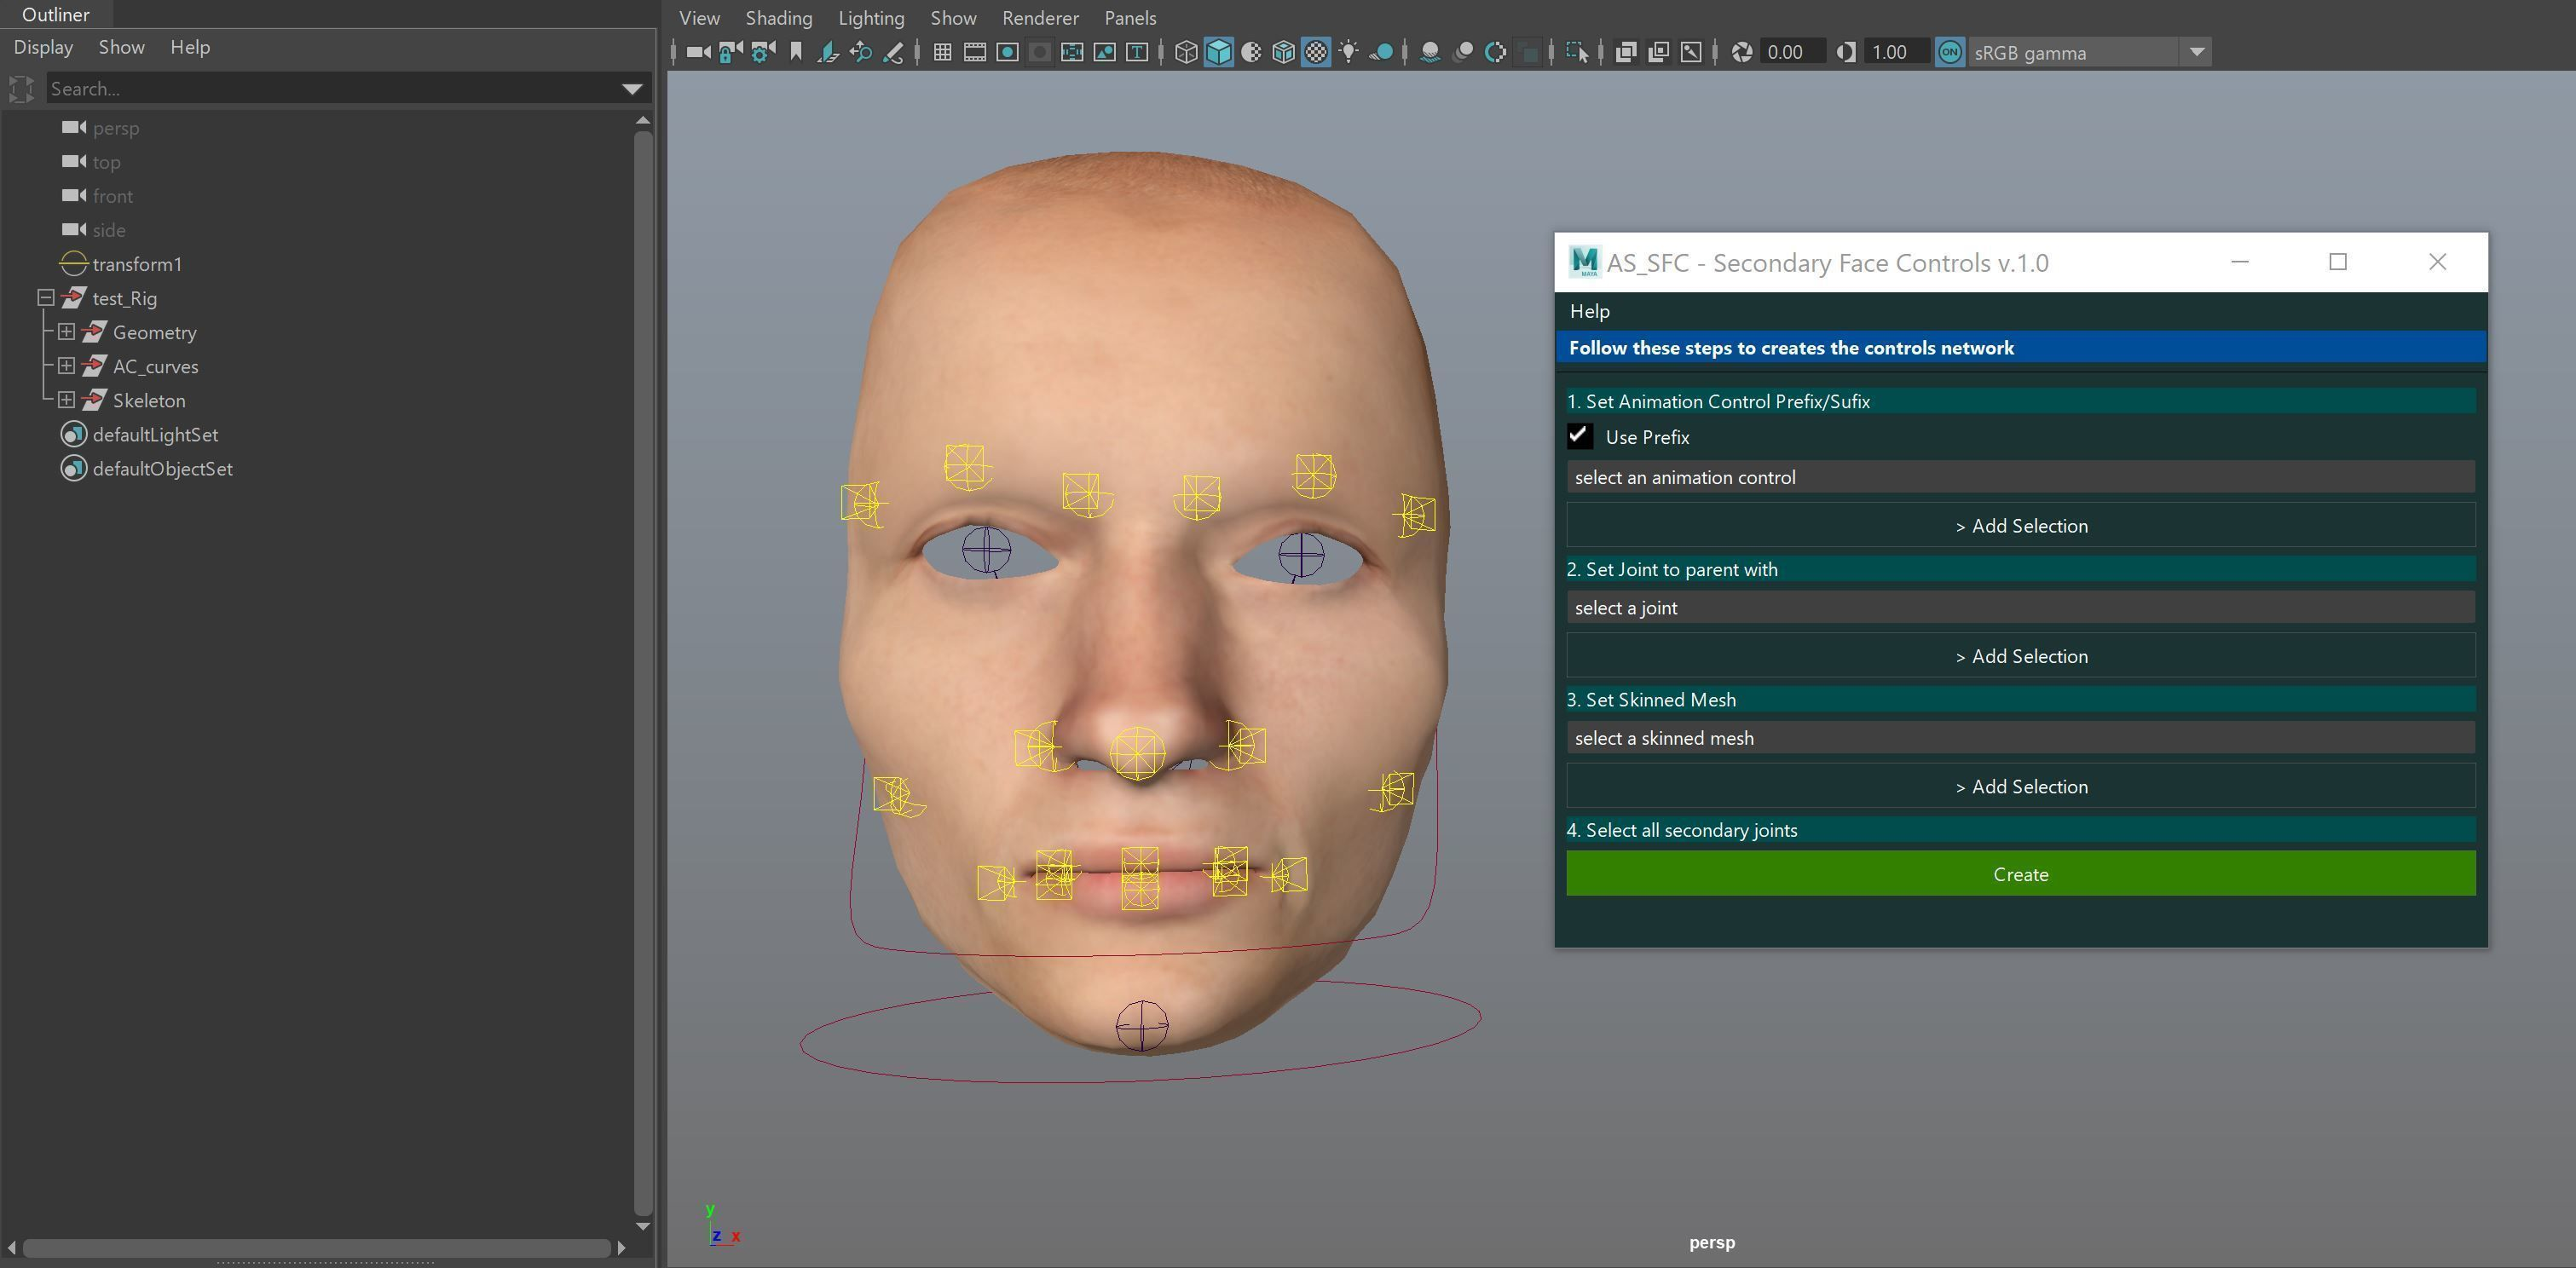 AS SFC - Secondary Face Controls for Maya